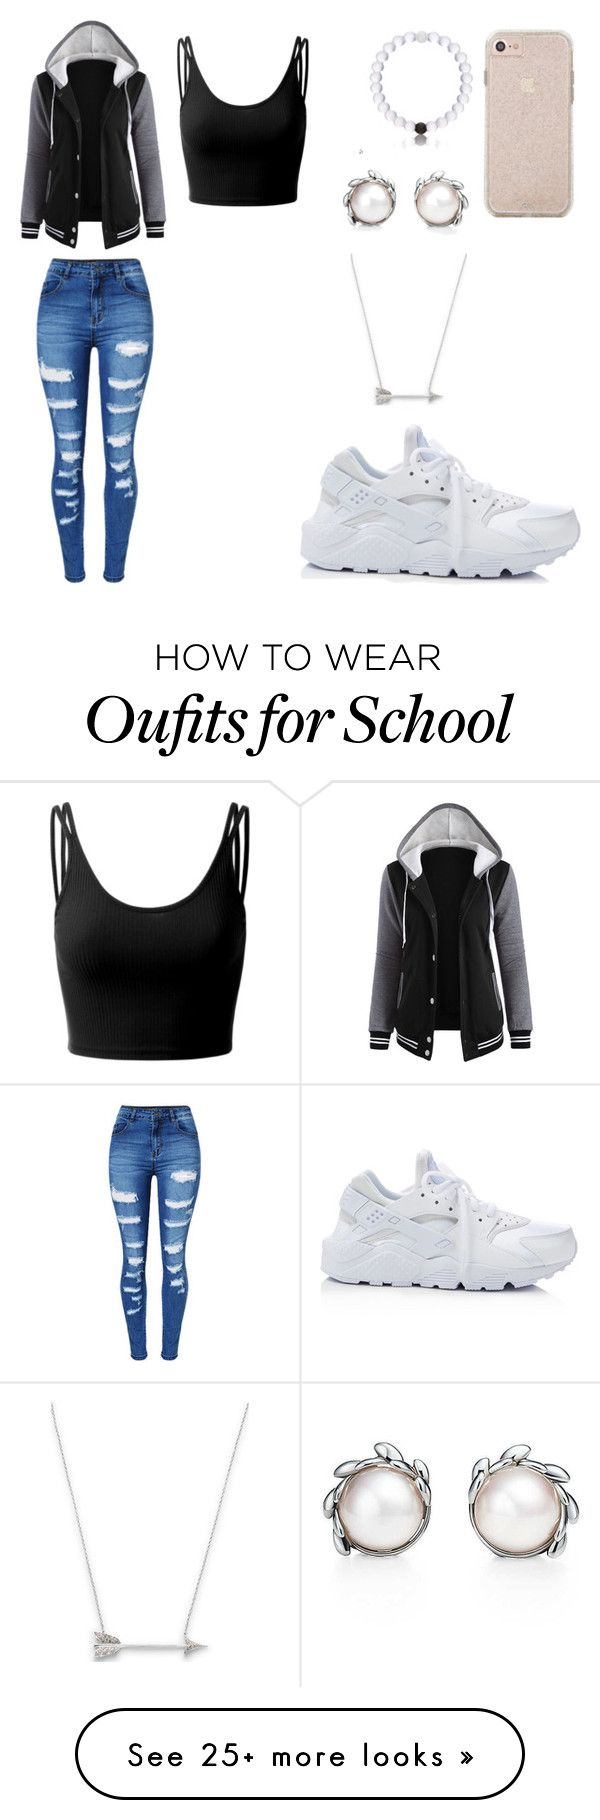 """HIGH SCHOOL STYLE"" by mgarcia-iii on Polyvore featuring Tiffany & Co., Estella Bartlett, Doublju, WithChic and NIKE"